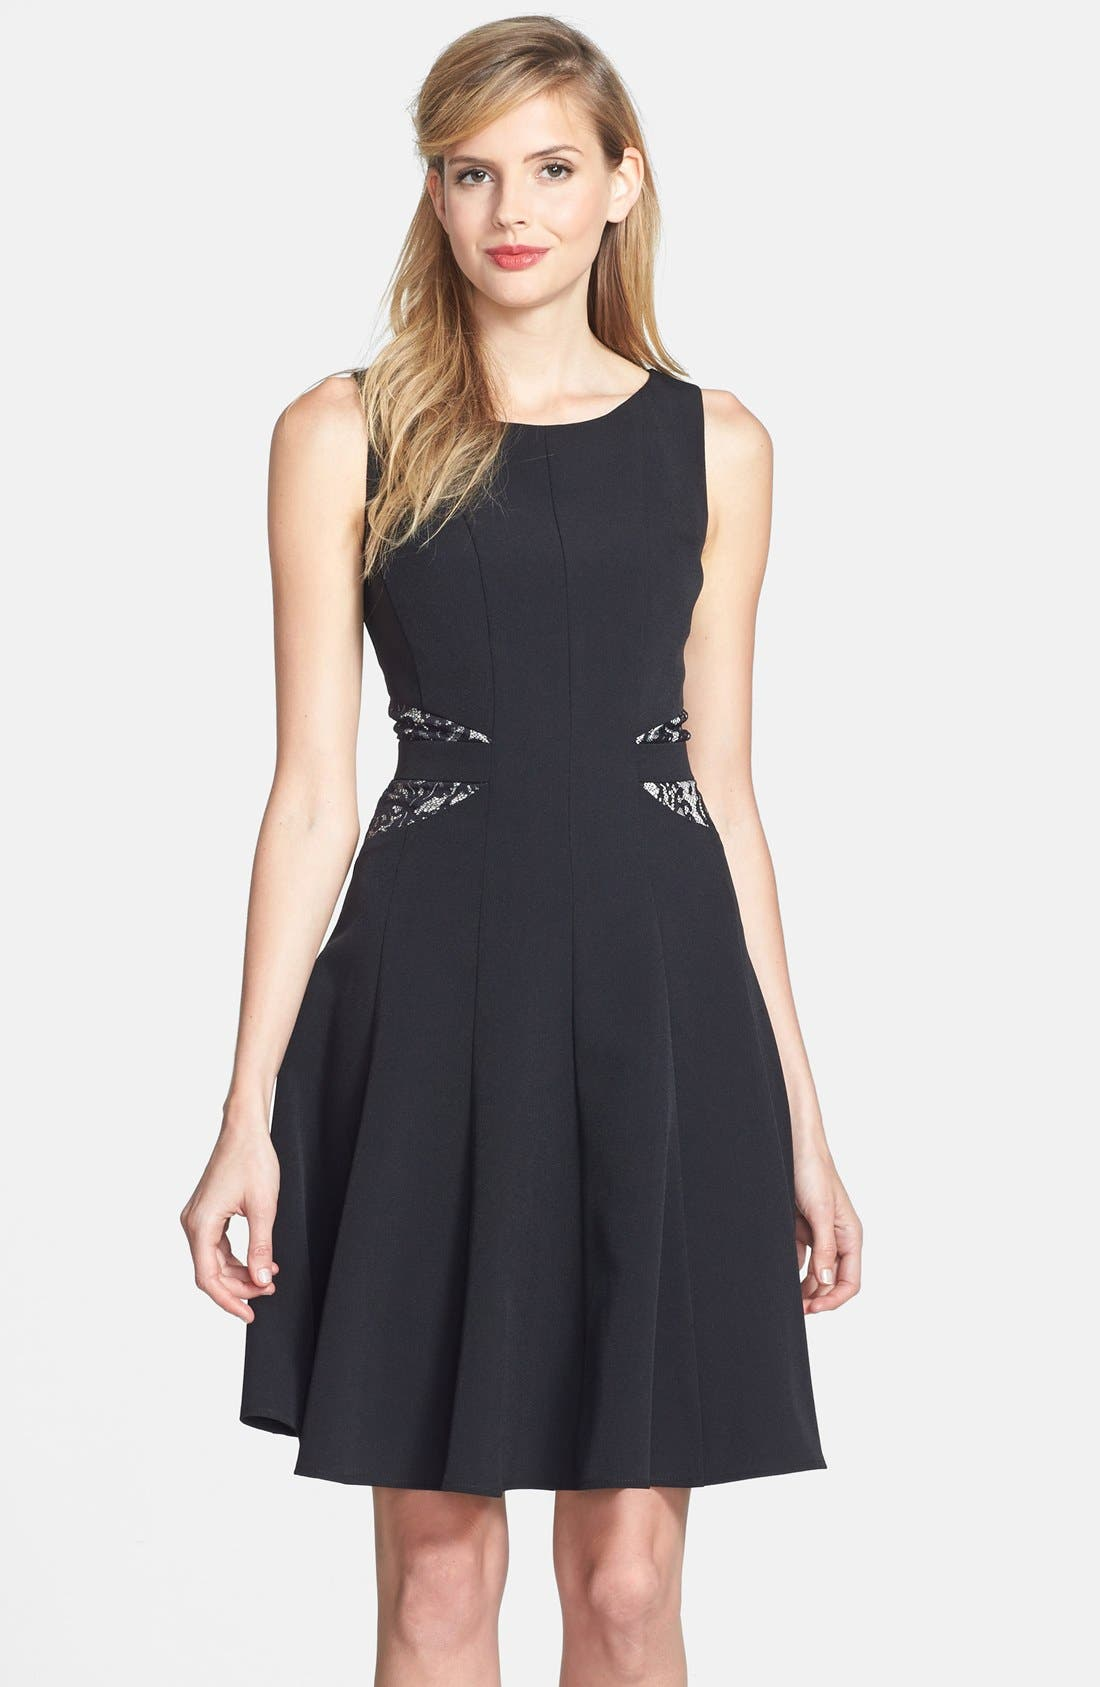 Alternate Image 1 Selected - Taylor Dresses Lace Back Crepe Fit & Flare Dress